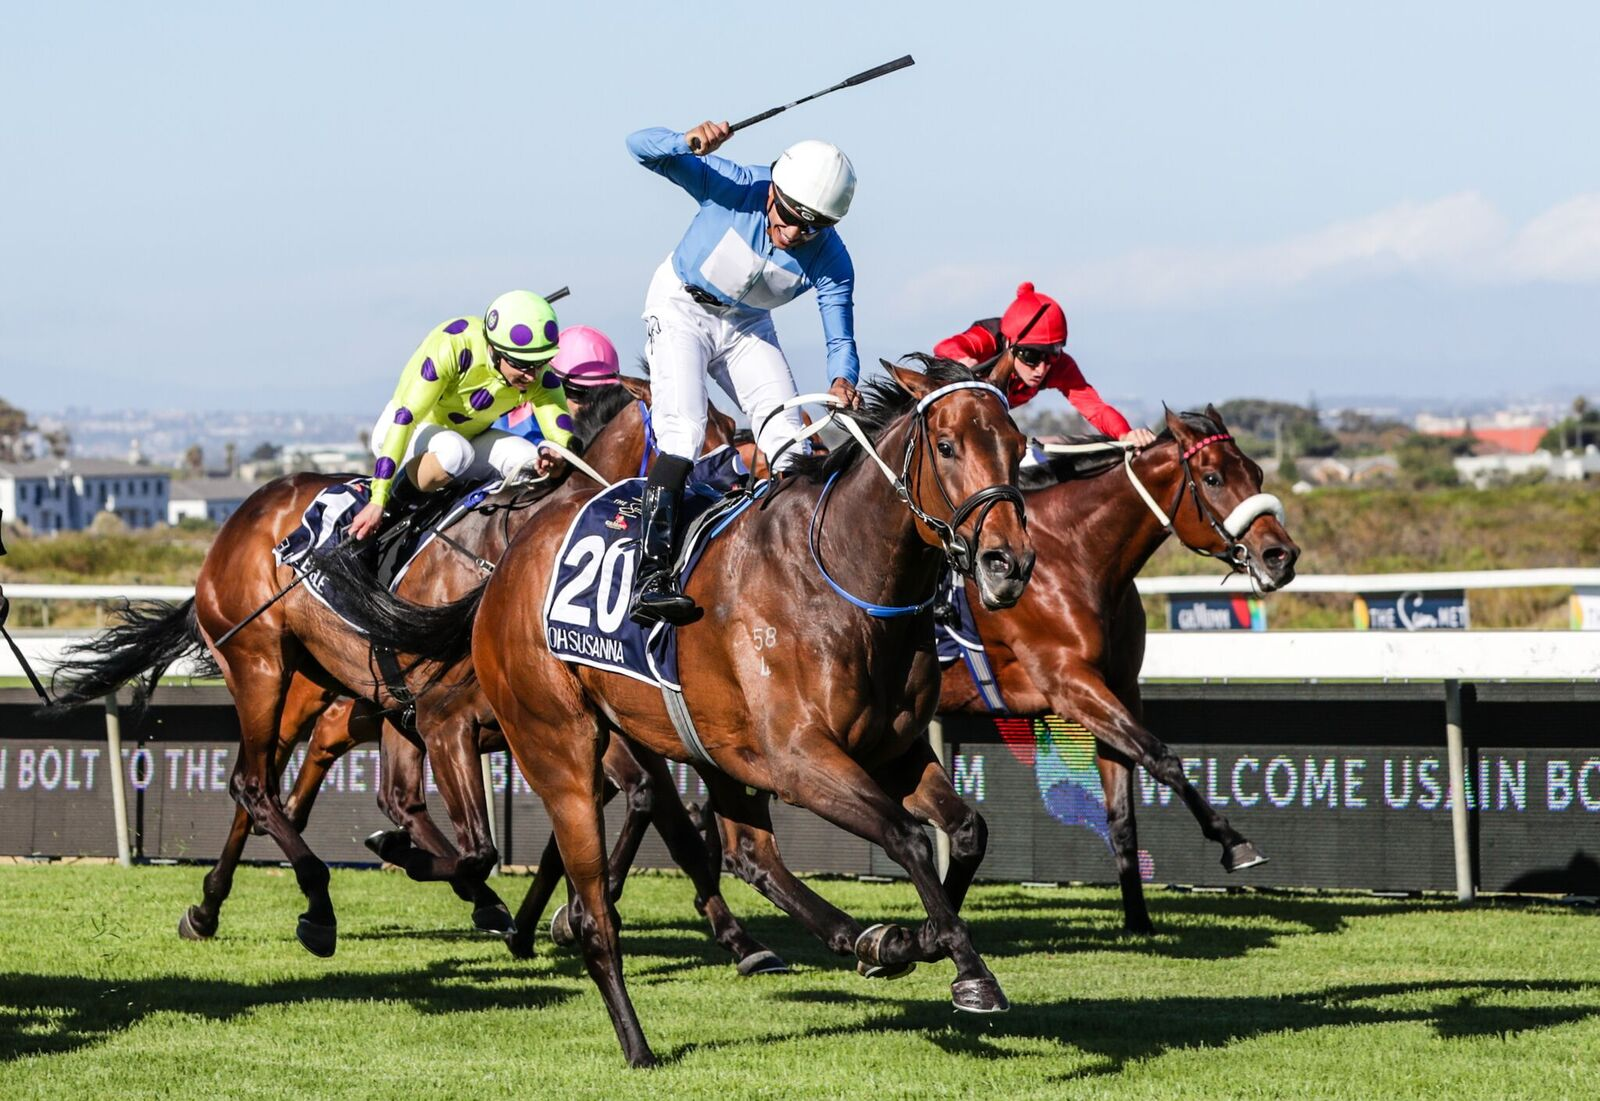 Australian-bred Oh Susanna wins the prestigious Group One Sun met in South Africa.